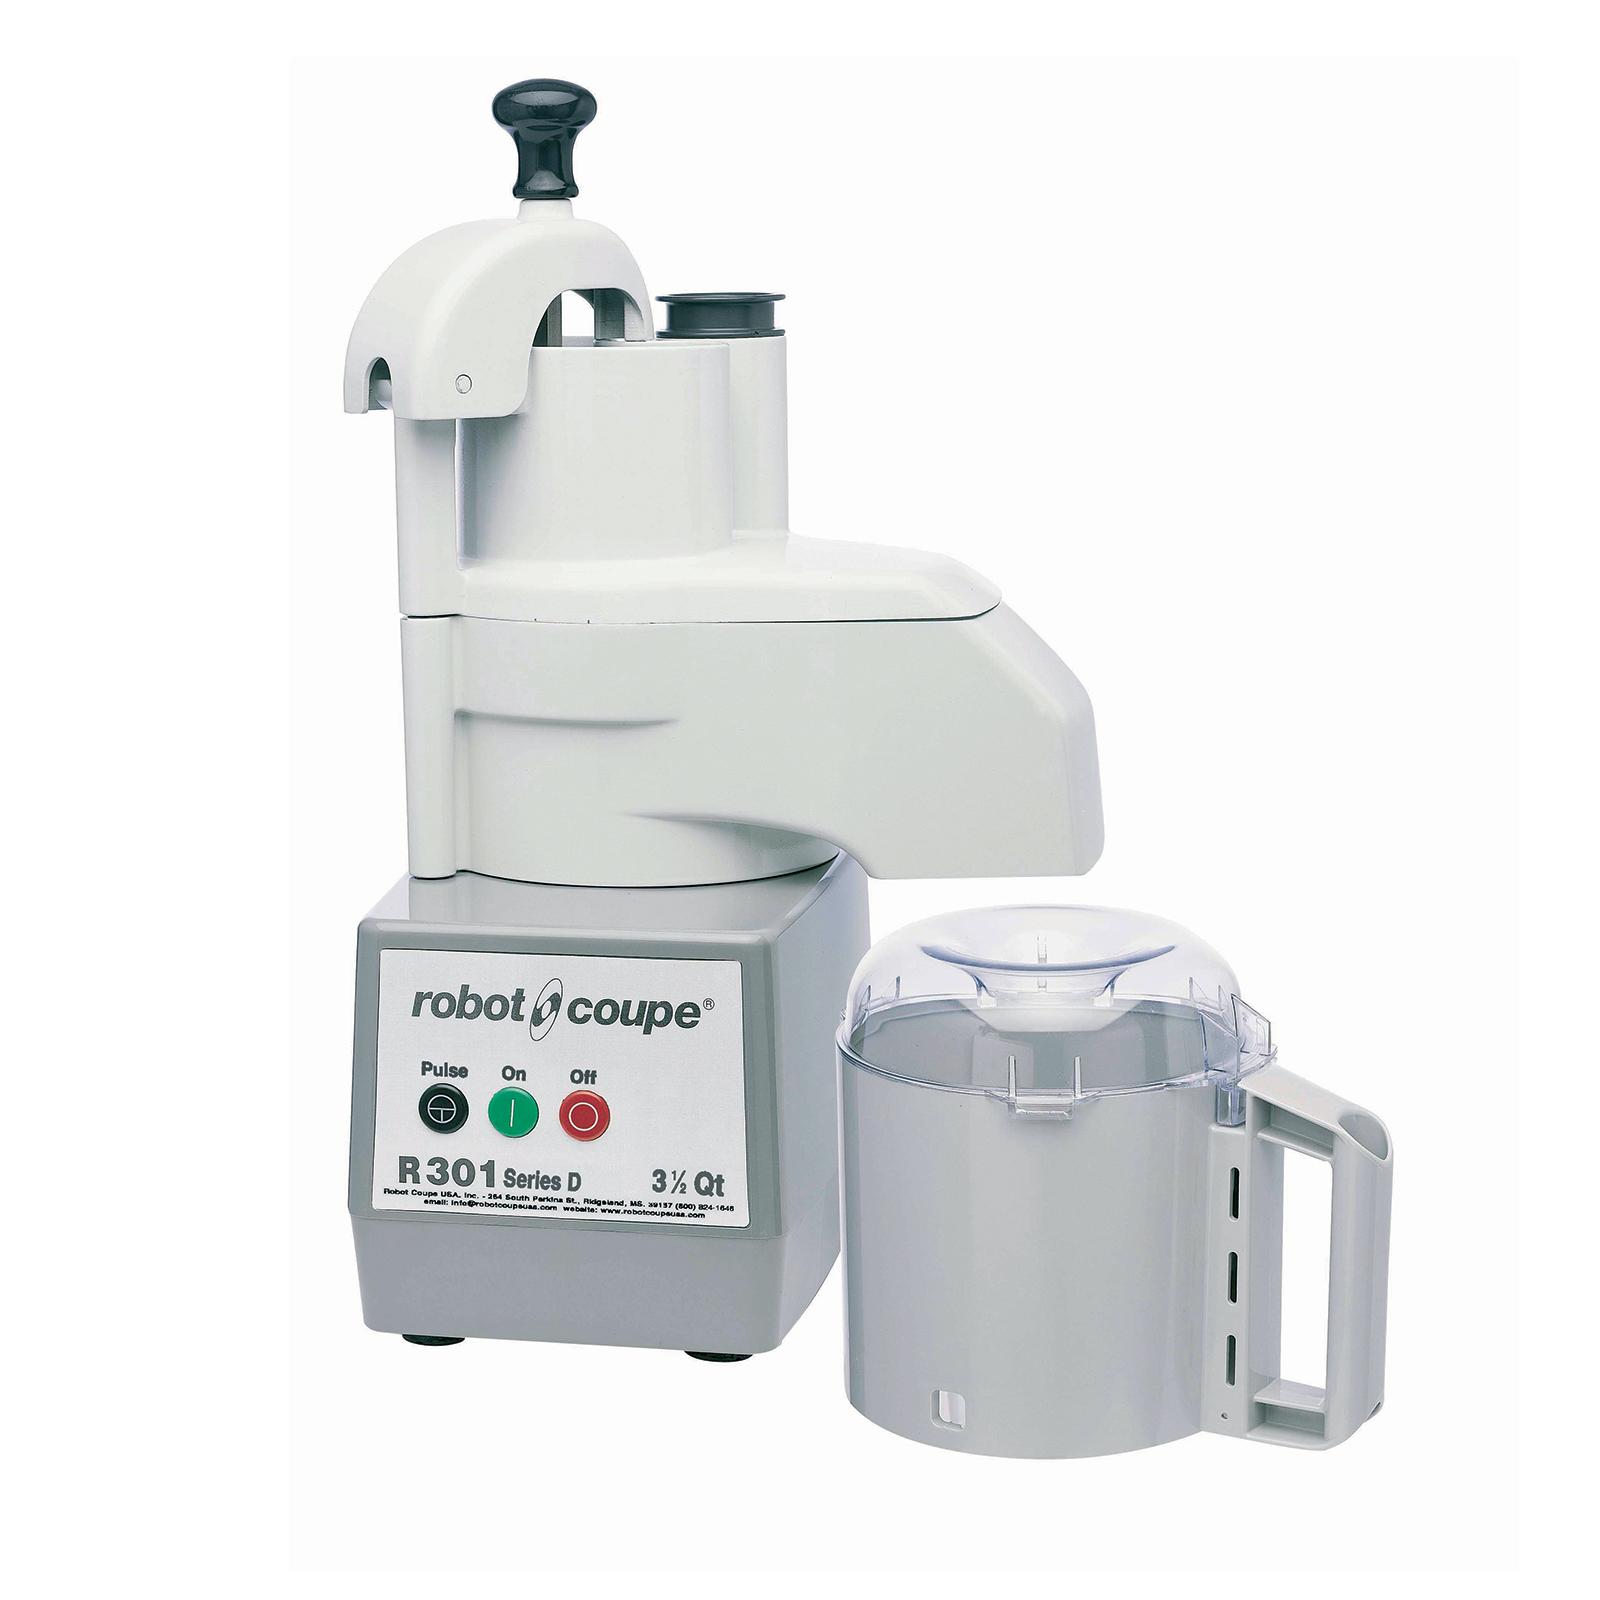 Robot Coupe R301 food processor, benchtop / countertop